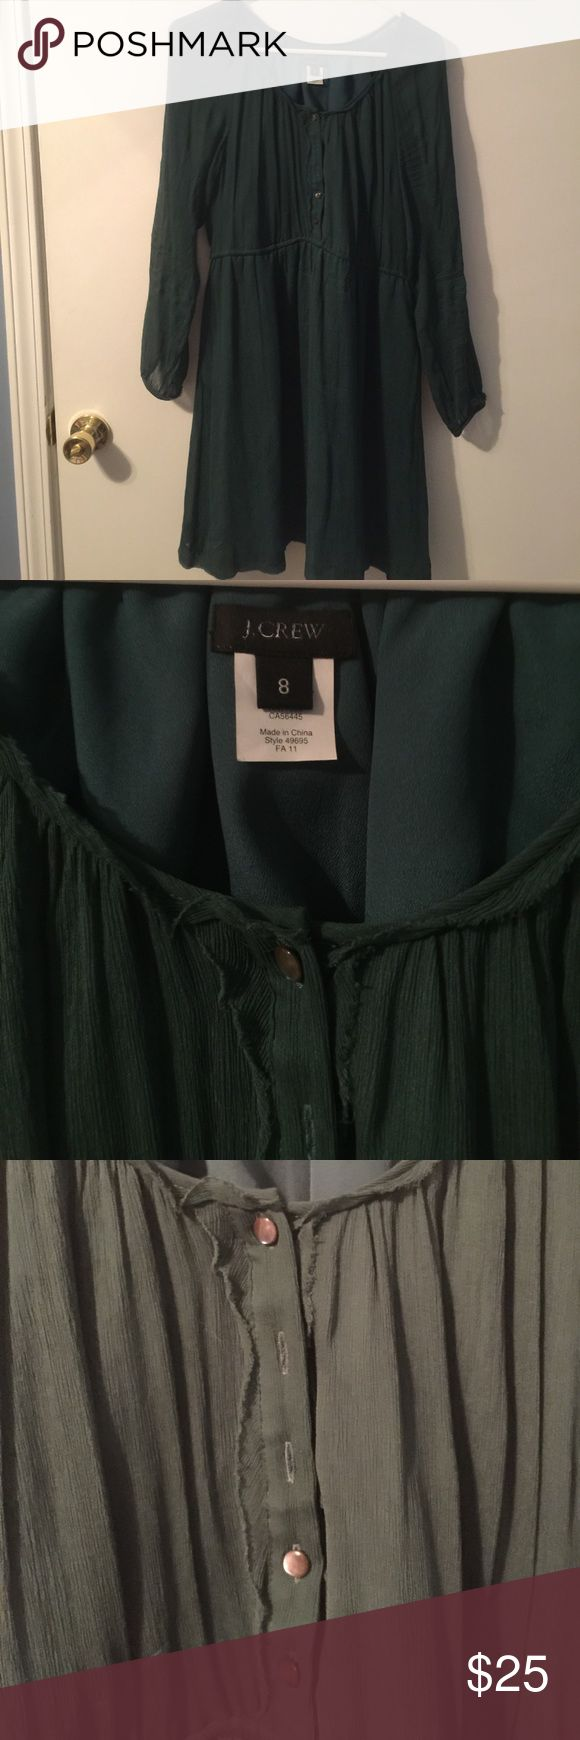 J. Crew Forest Green midi dress with sheer sleeve Size 8 J.Crew A-lined dress with pockets. The stress is in a beautiful forest green color with cinched waist. The sleeves are sheer and also buttoned as pictured. The dress is missing two buttons as shown and I found one of the buttons however was unable to locate the other so I found one similar that is also J.Crew and will be happy to send that as well. I wore this dress with boots in the fall and it was adorable. Only selling because it is…